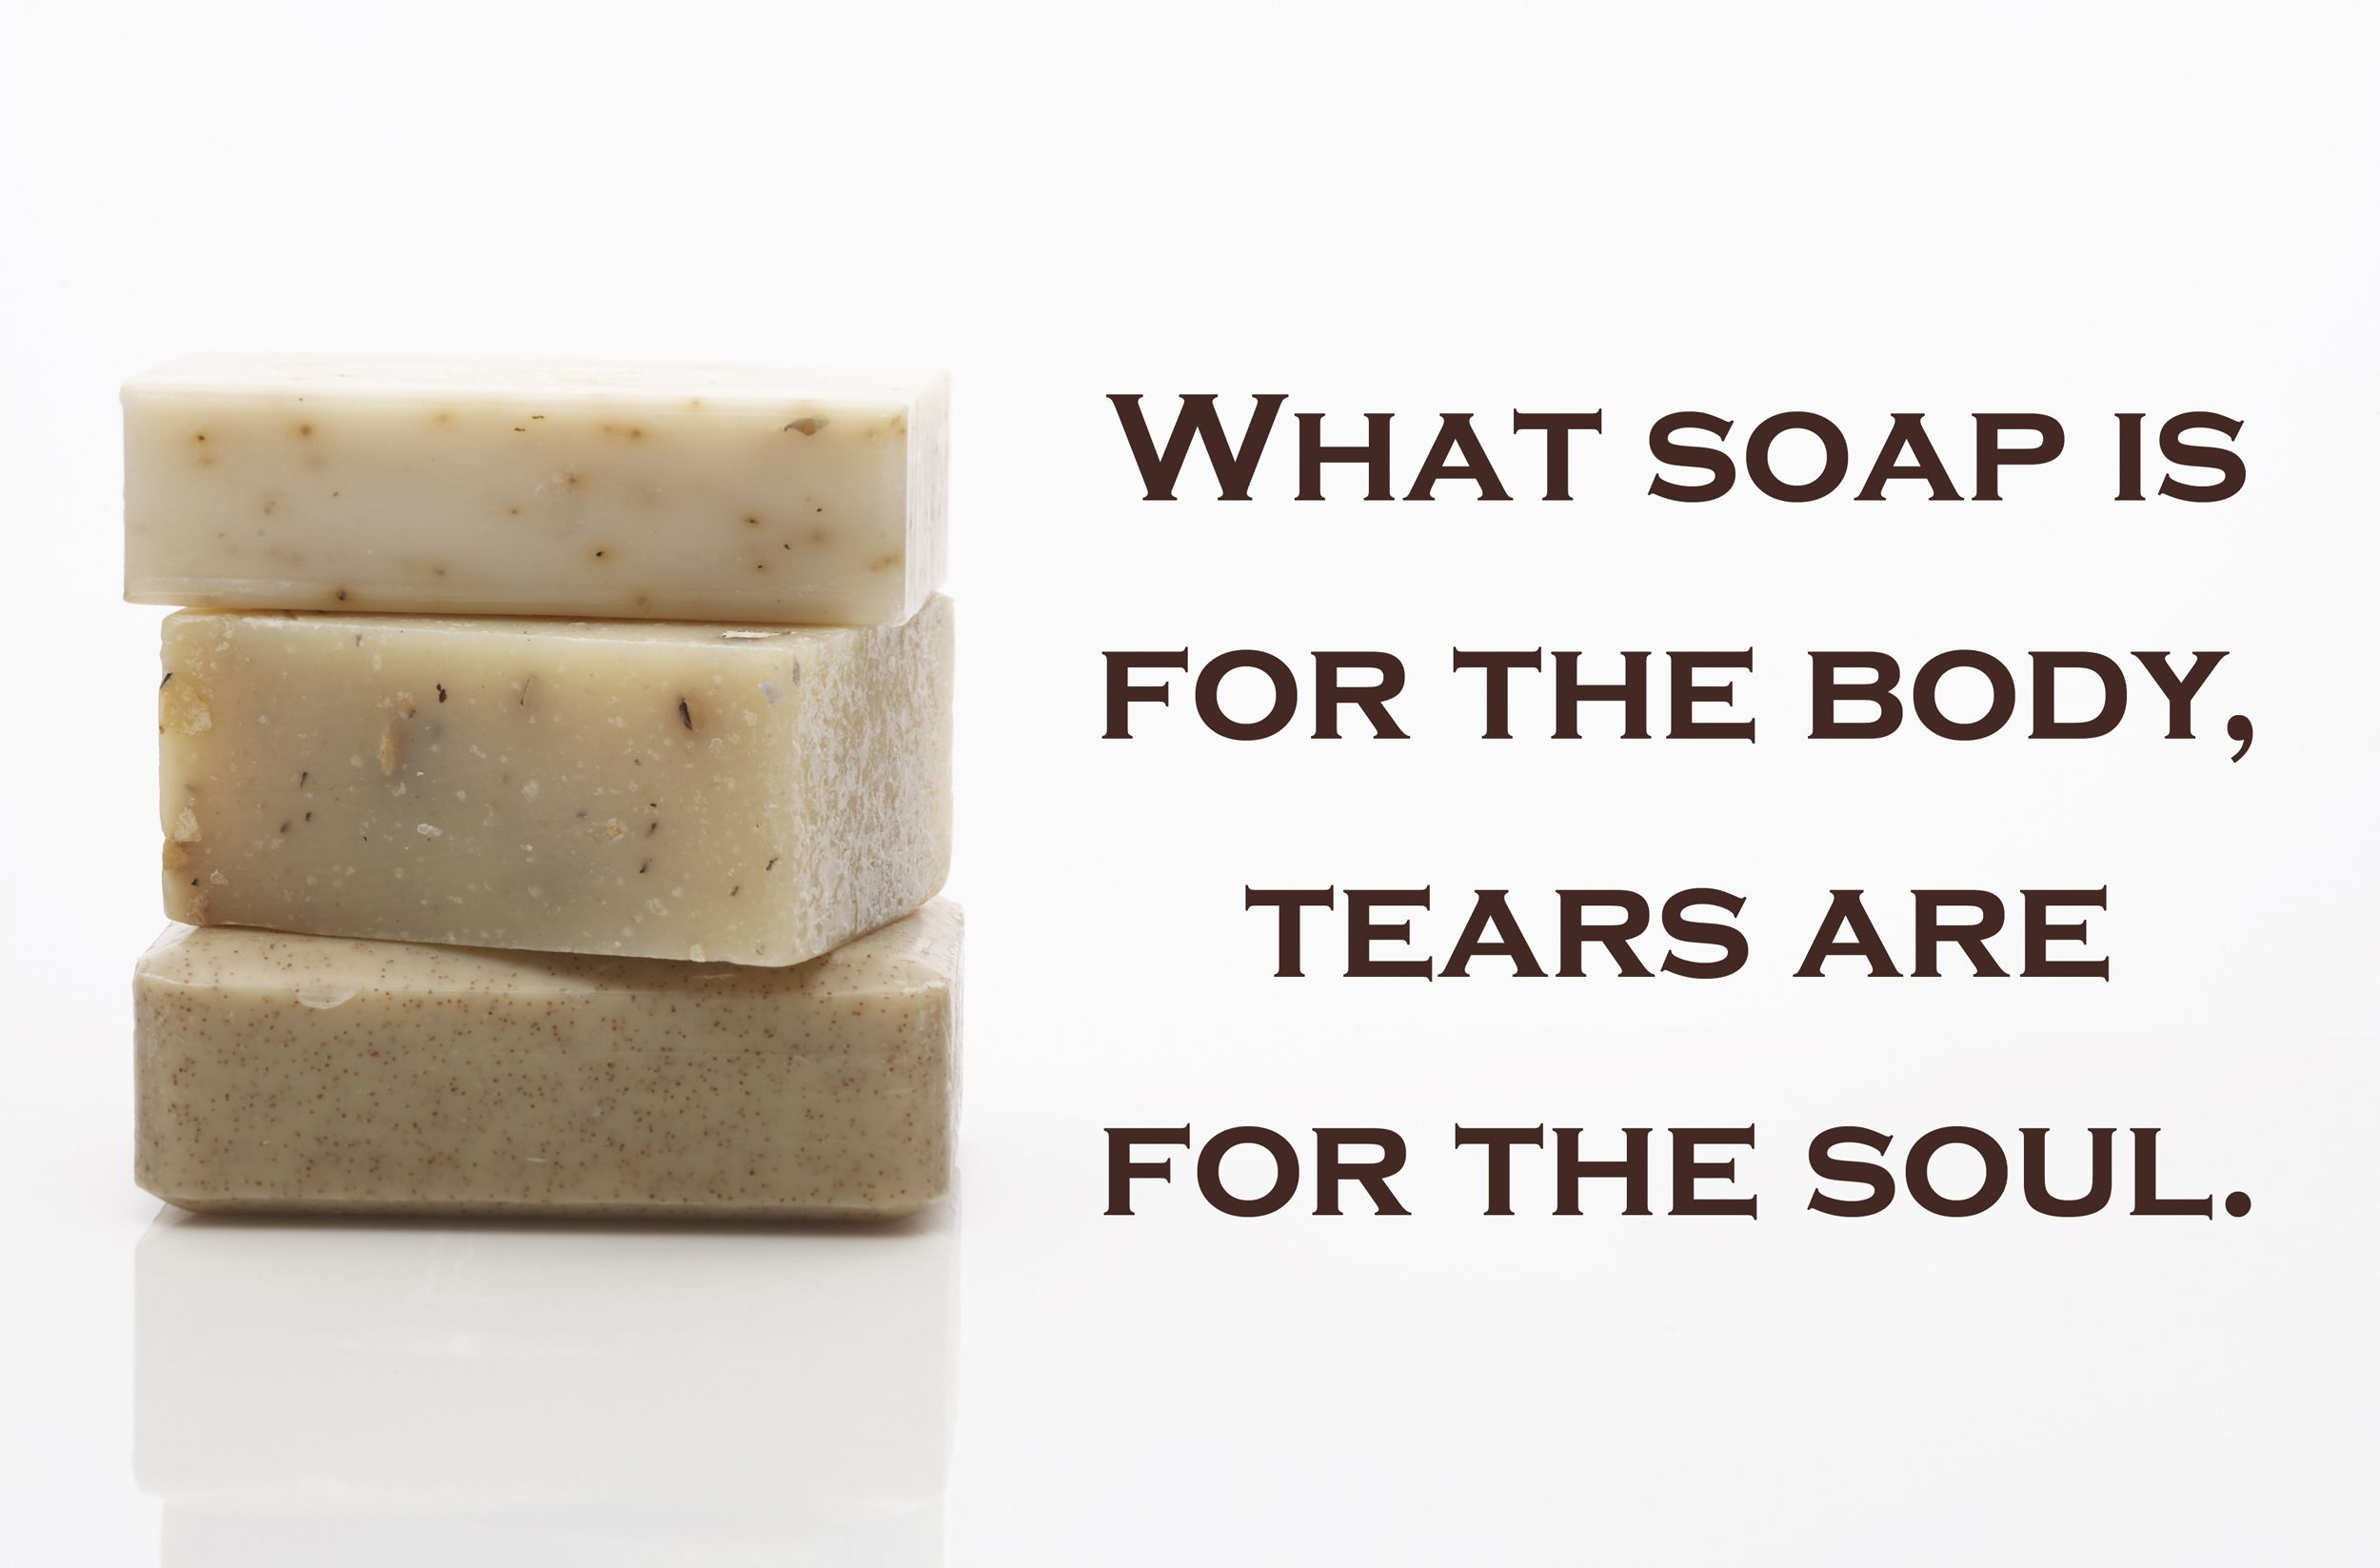 Soap bars and quote